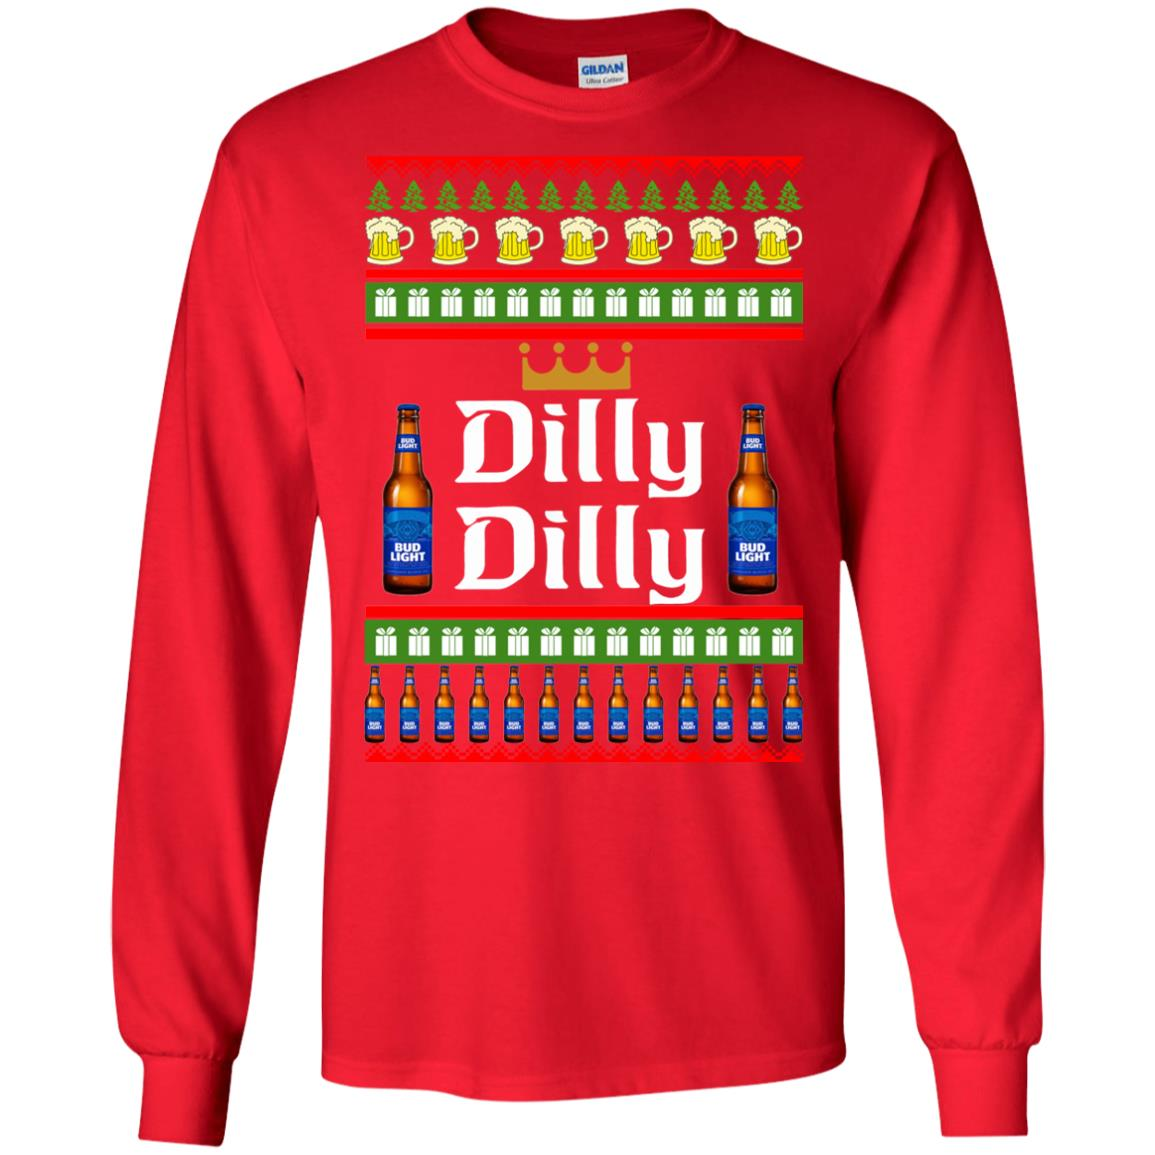 bud light dilly dilly ugly sweater christmas sweatshirts